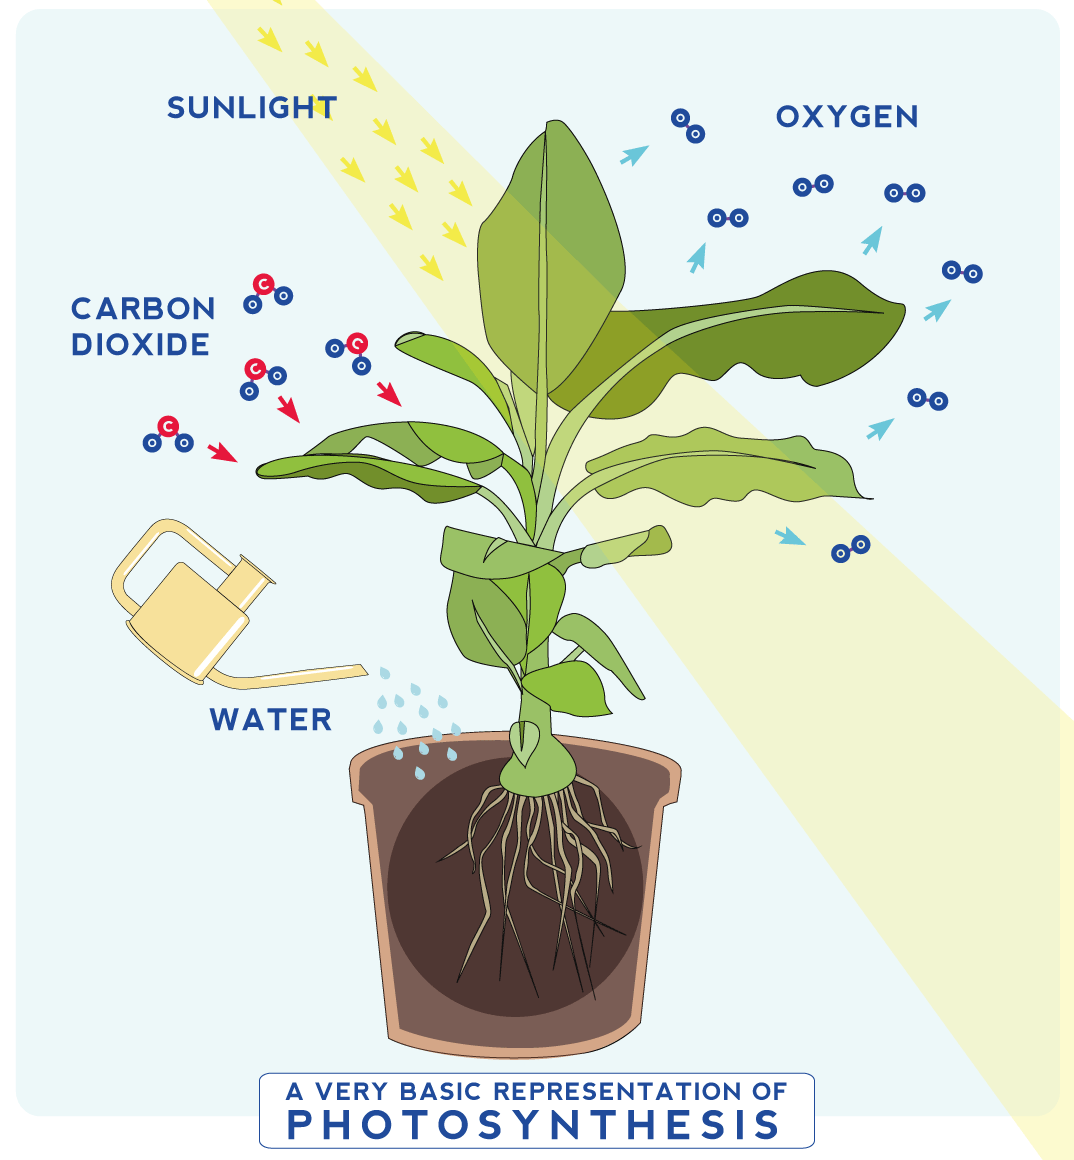 A Very Basic Representation Of Photosynthesis Infographic